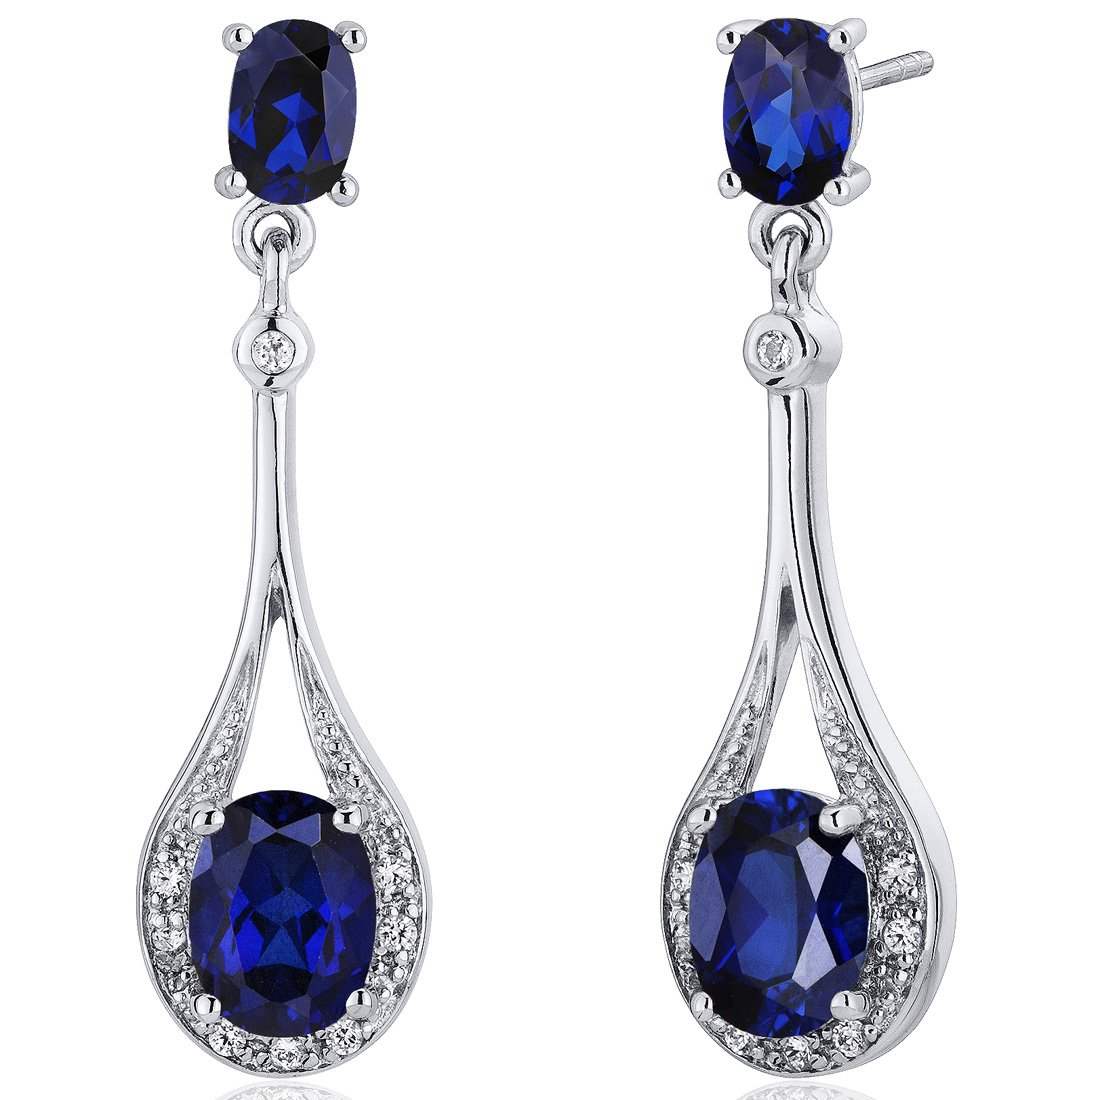 Created Blue Sapphire Dangle Earrings Sterling Silver 5.00 Carats by Peora